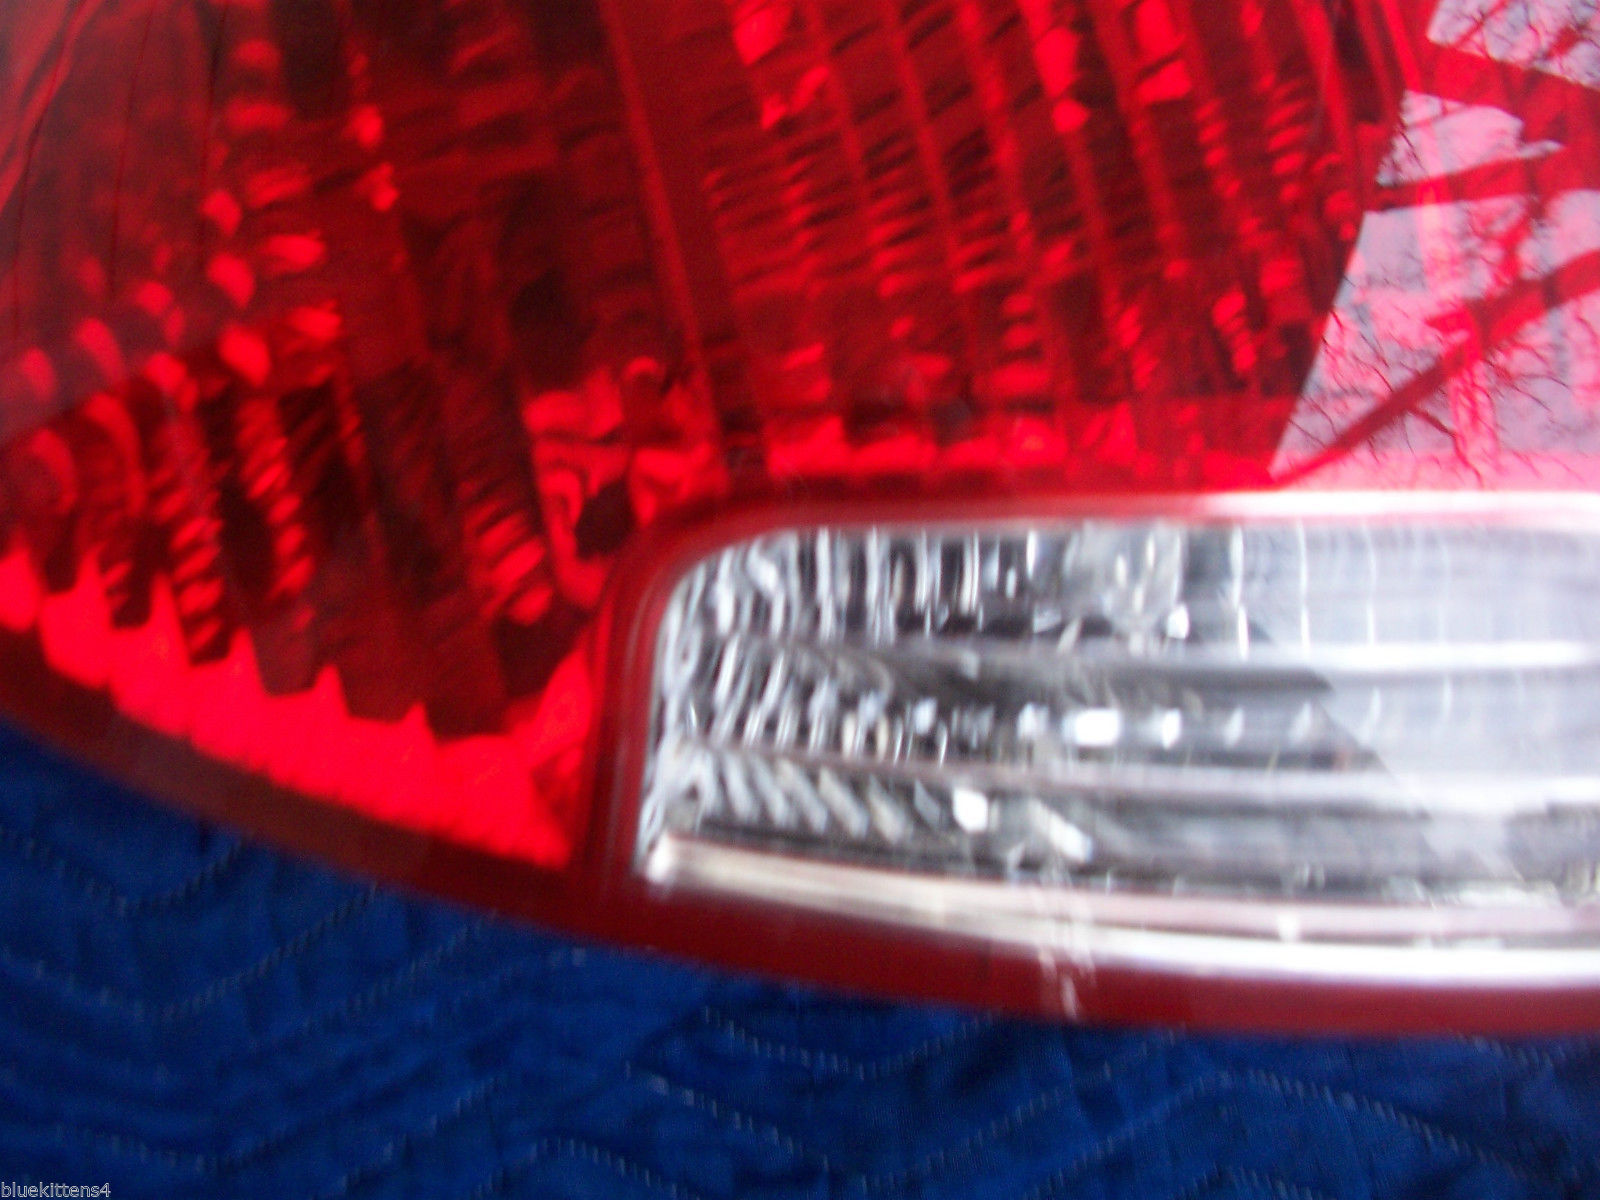 2007 ACCENT 4 DOOR LEFT HEAD LIGHT OEM USED ORIGINAL HYUNDAI PART 2008 2009 2010 image 9